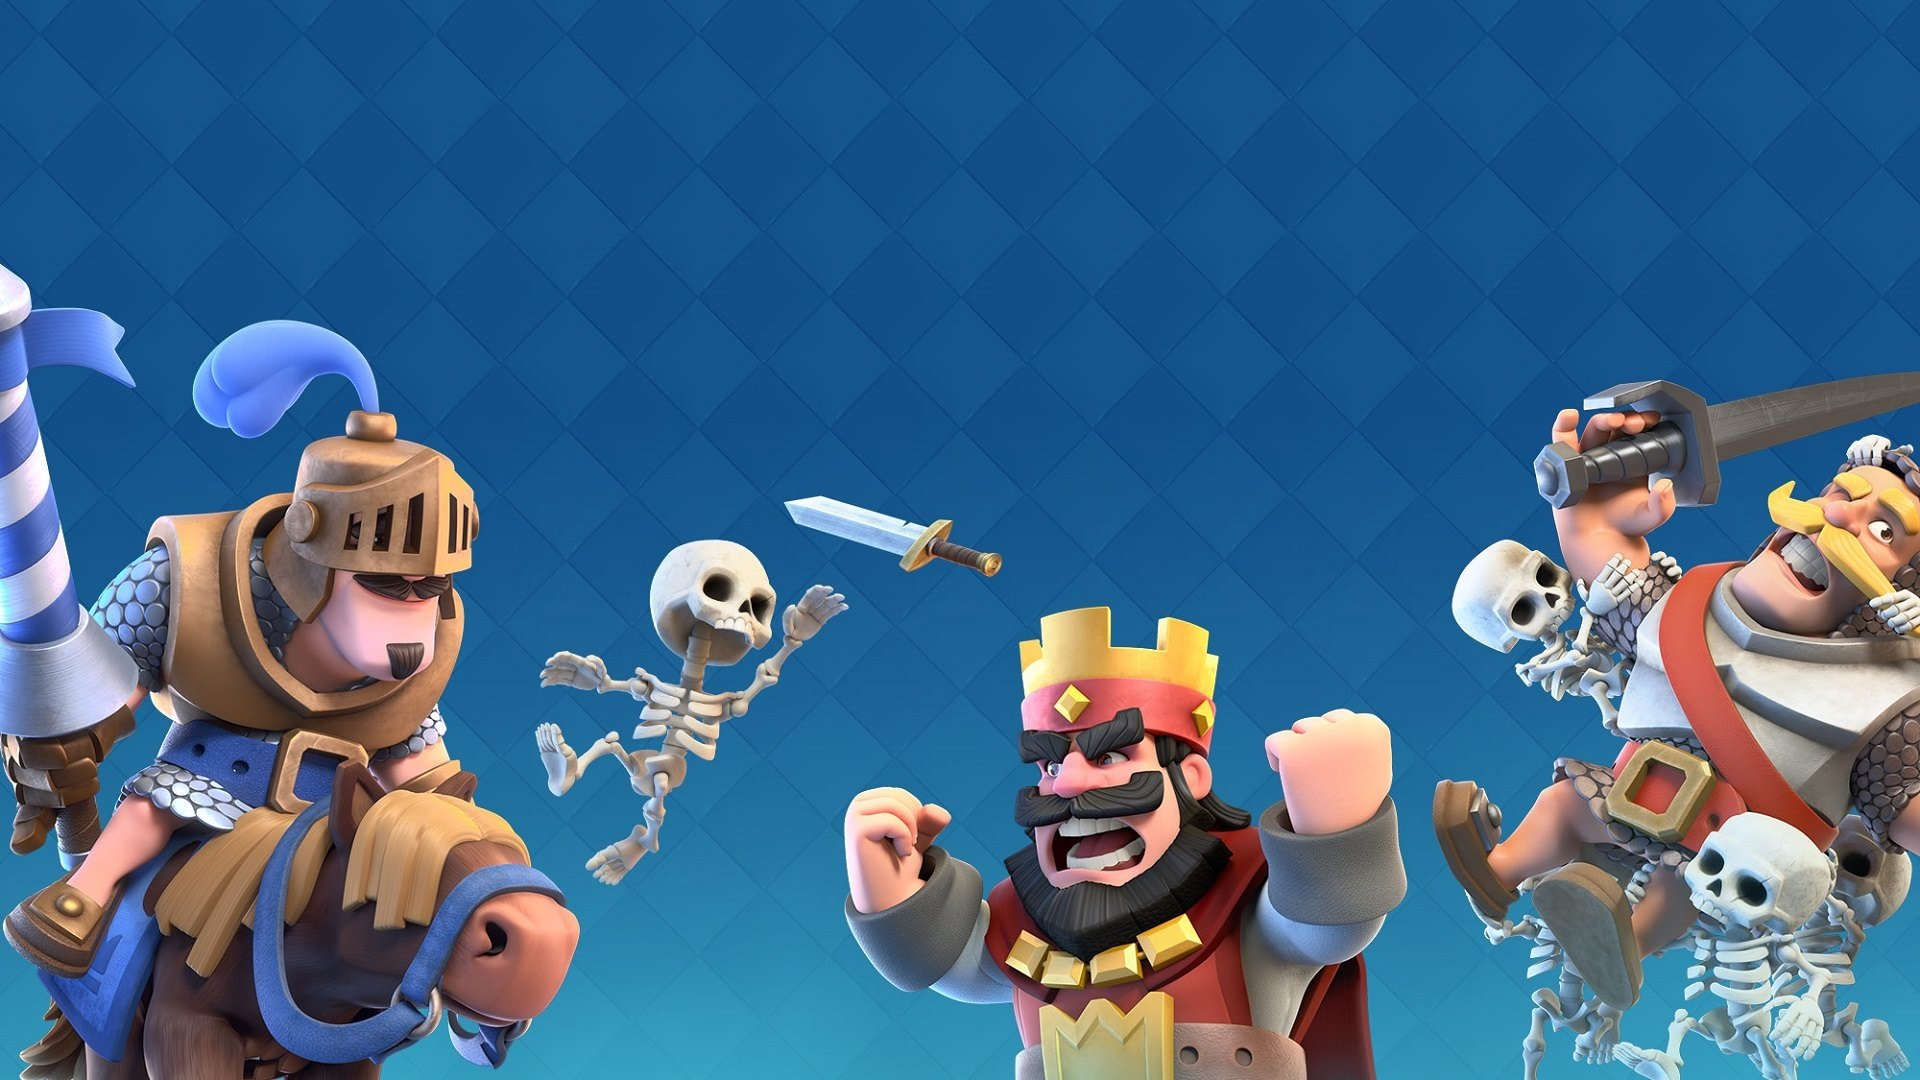 Clash royale hd wallpaper background image 1920x1080 id 855977 wallpaper abyss - Clash royale 2560x1440 ...